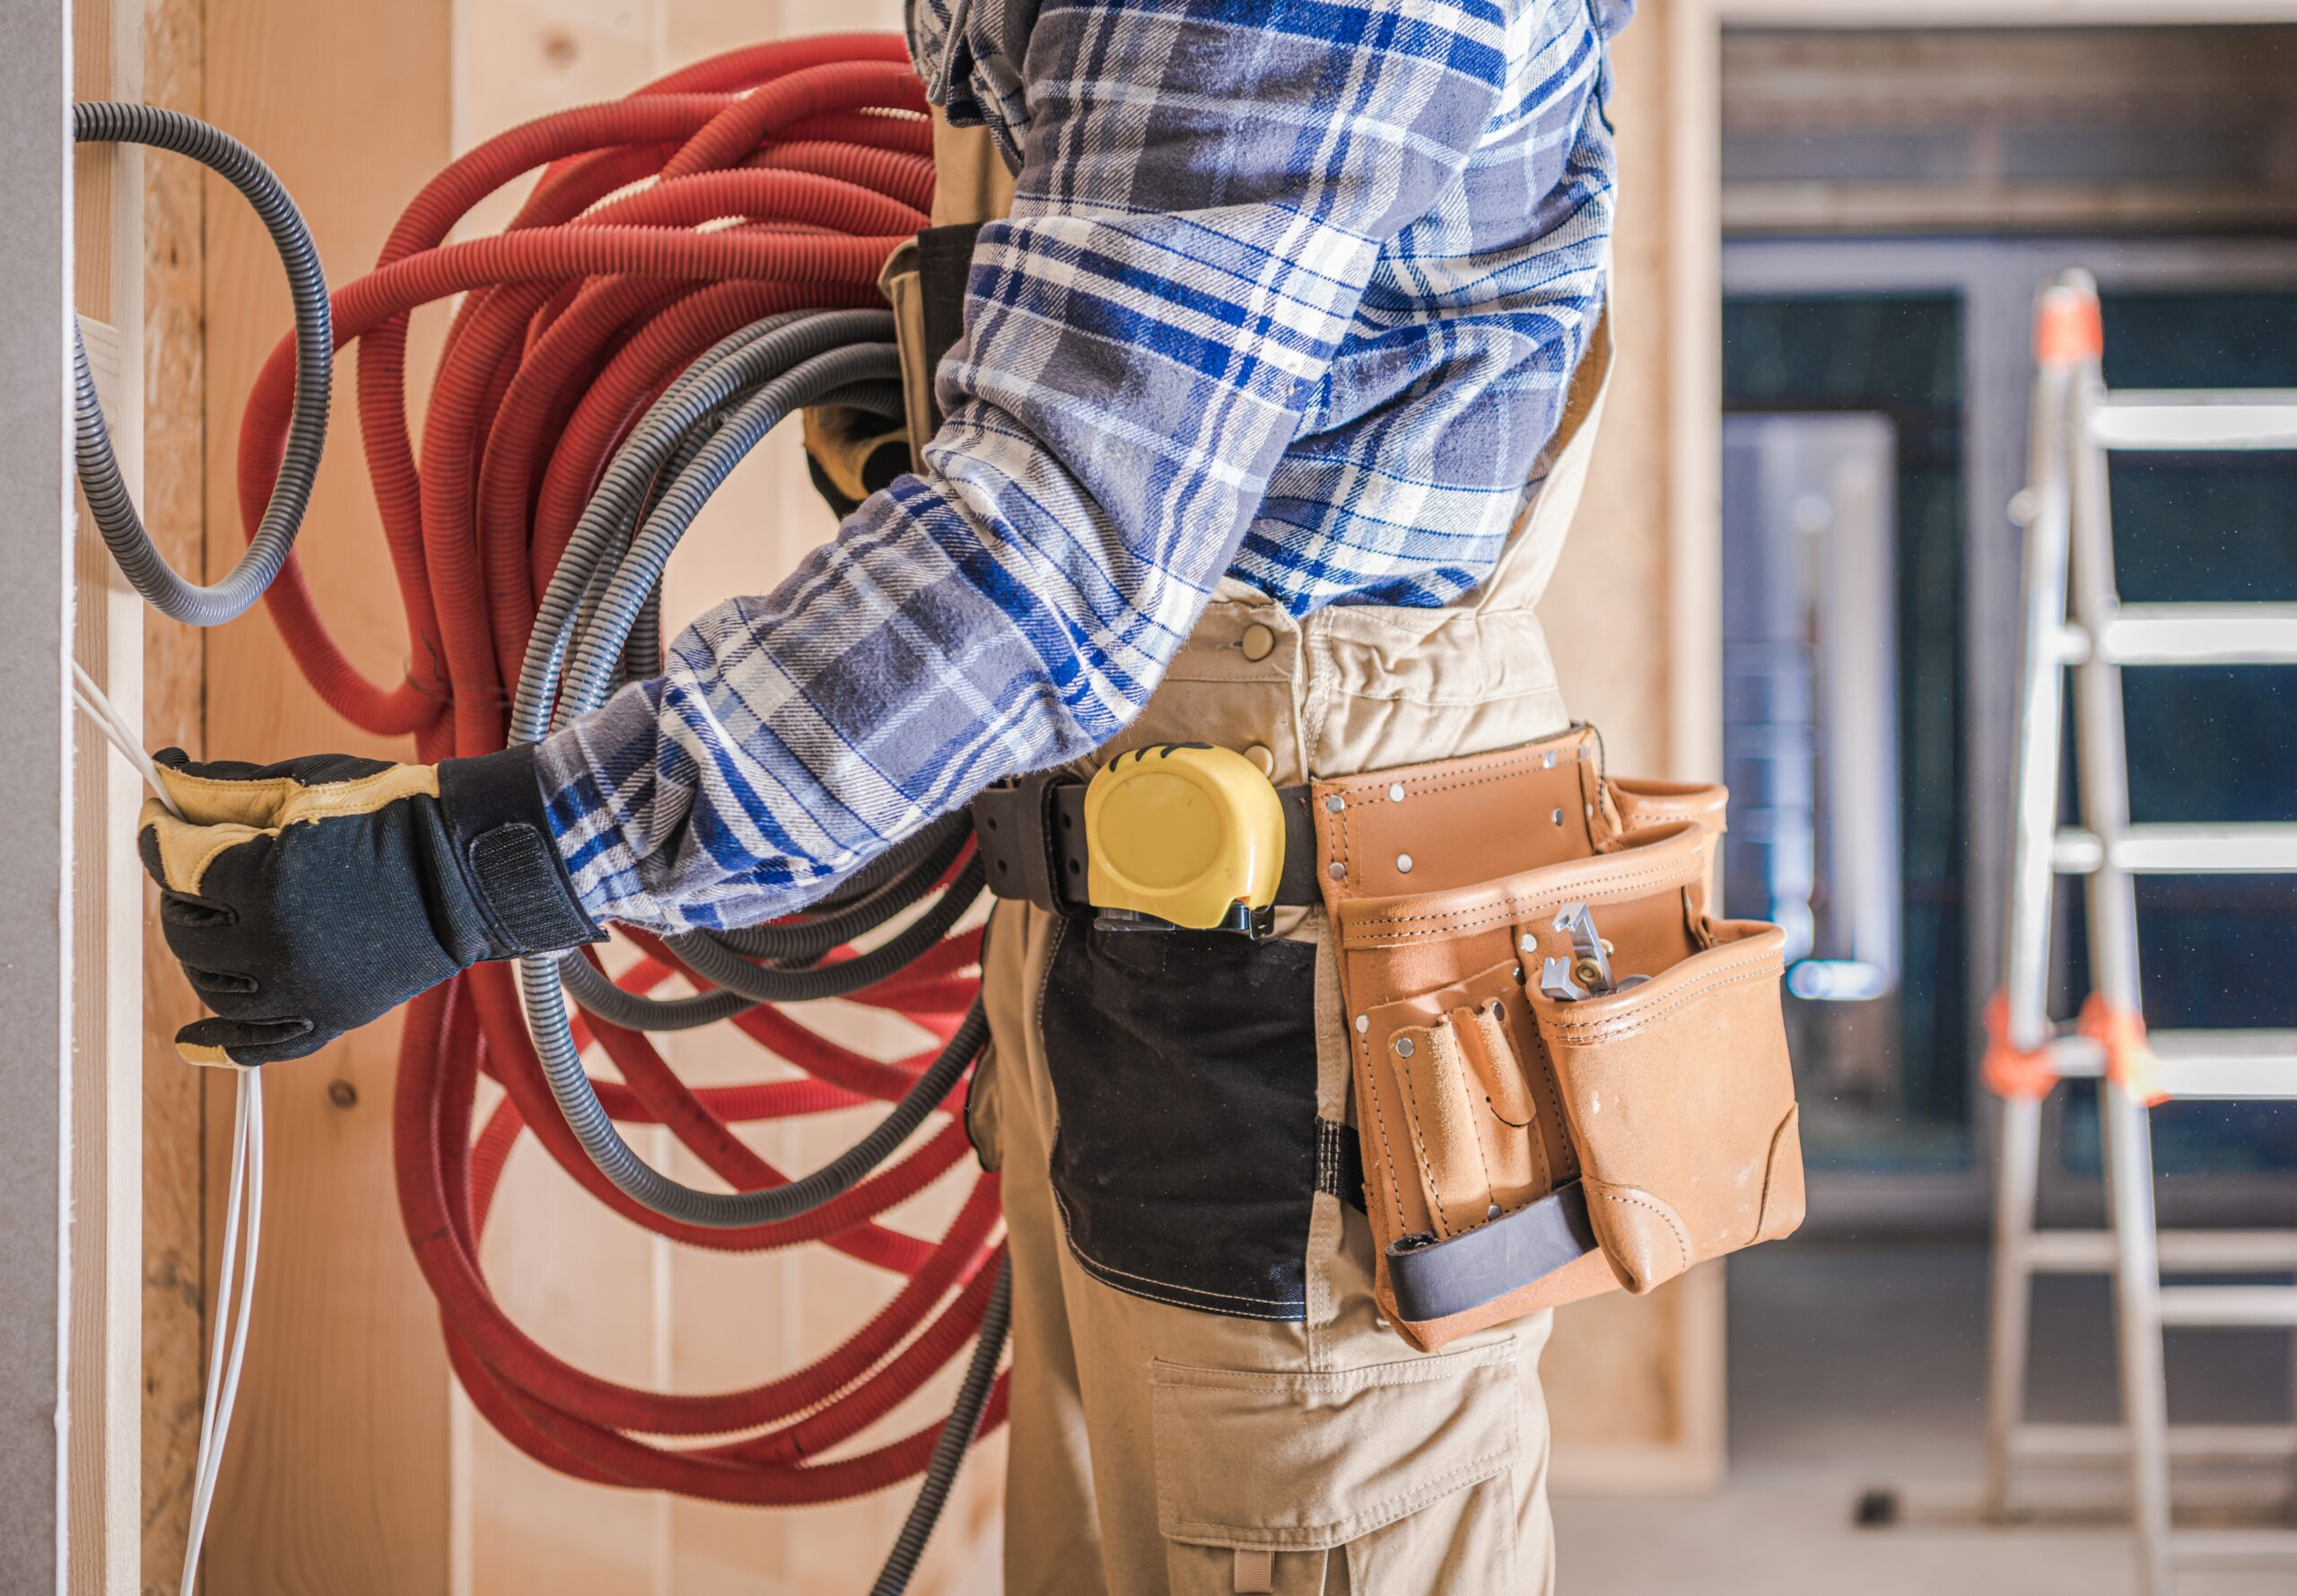 Caucasian Worker with Electric Cables Installing Residential Electric Lines Inside House.